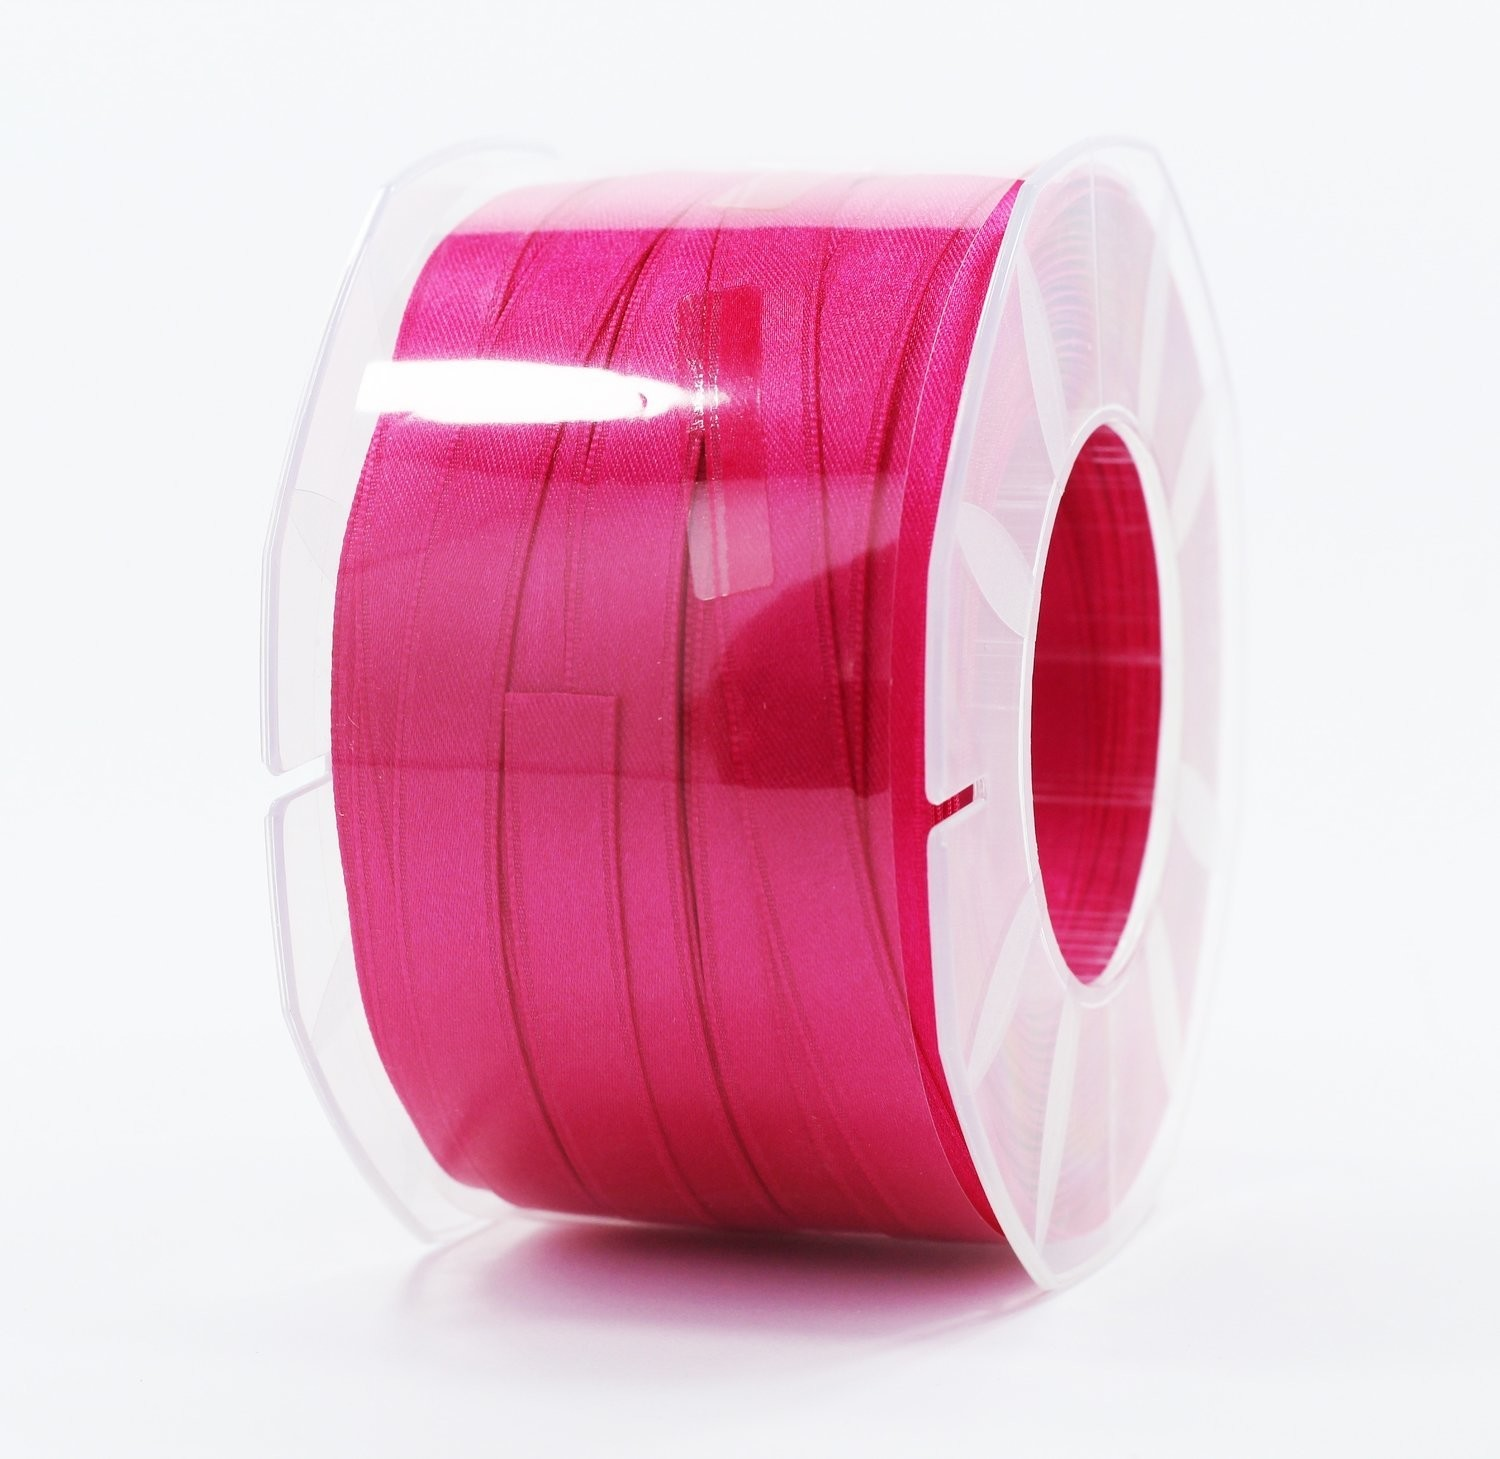 Furlanis nastro di raso fuxia scuro colore 26 mm.10 Mt.100